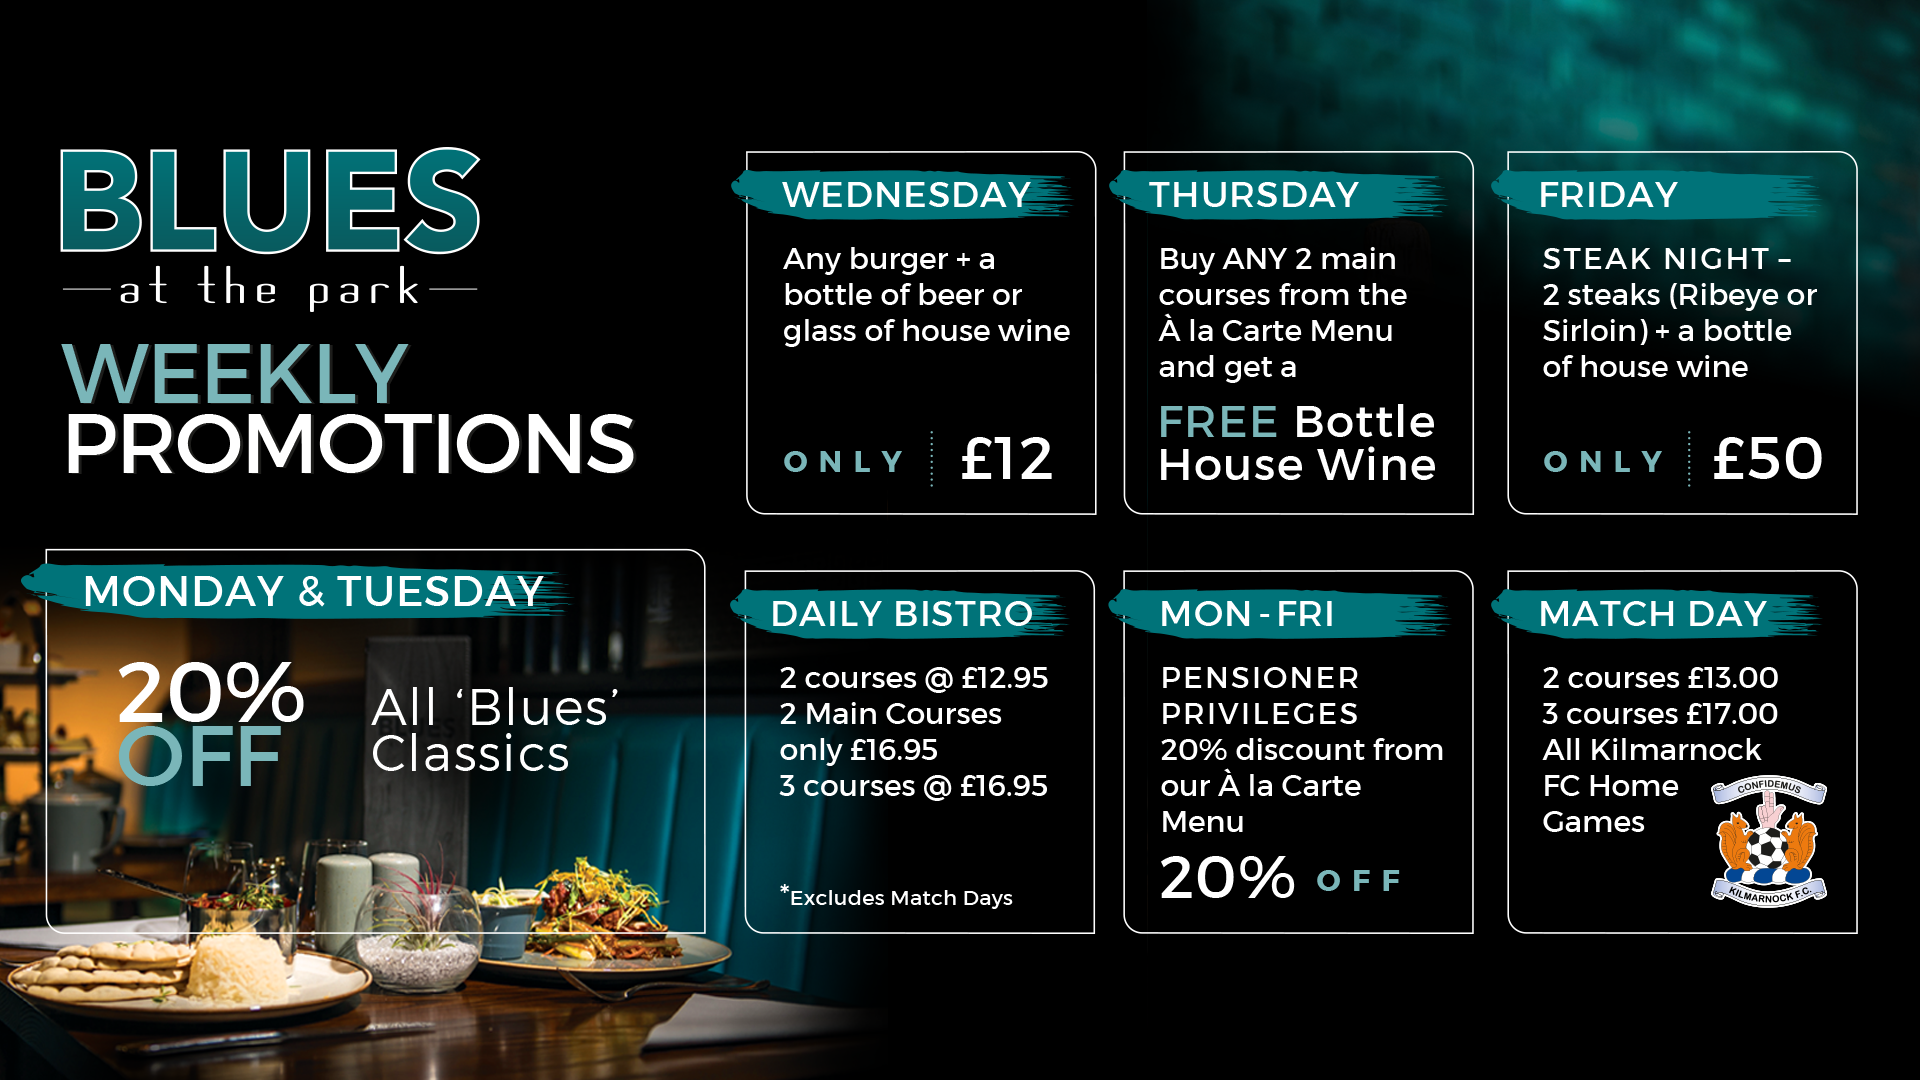 Blues Weekly Promotions